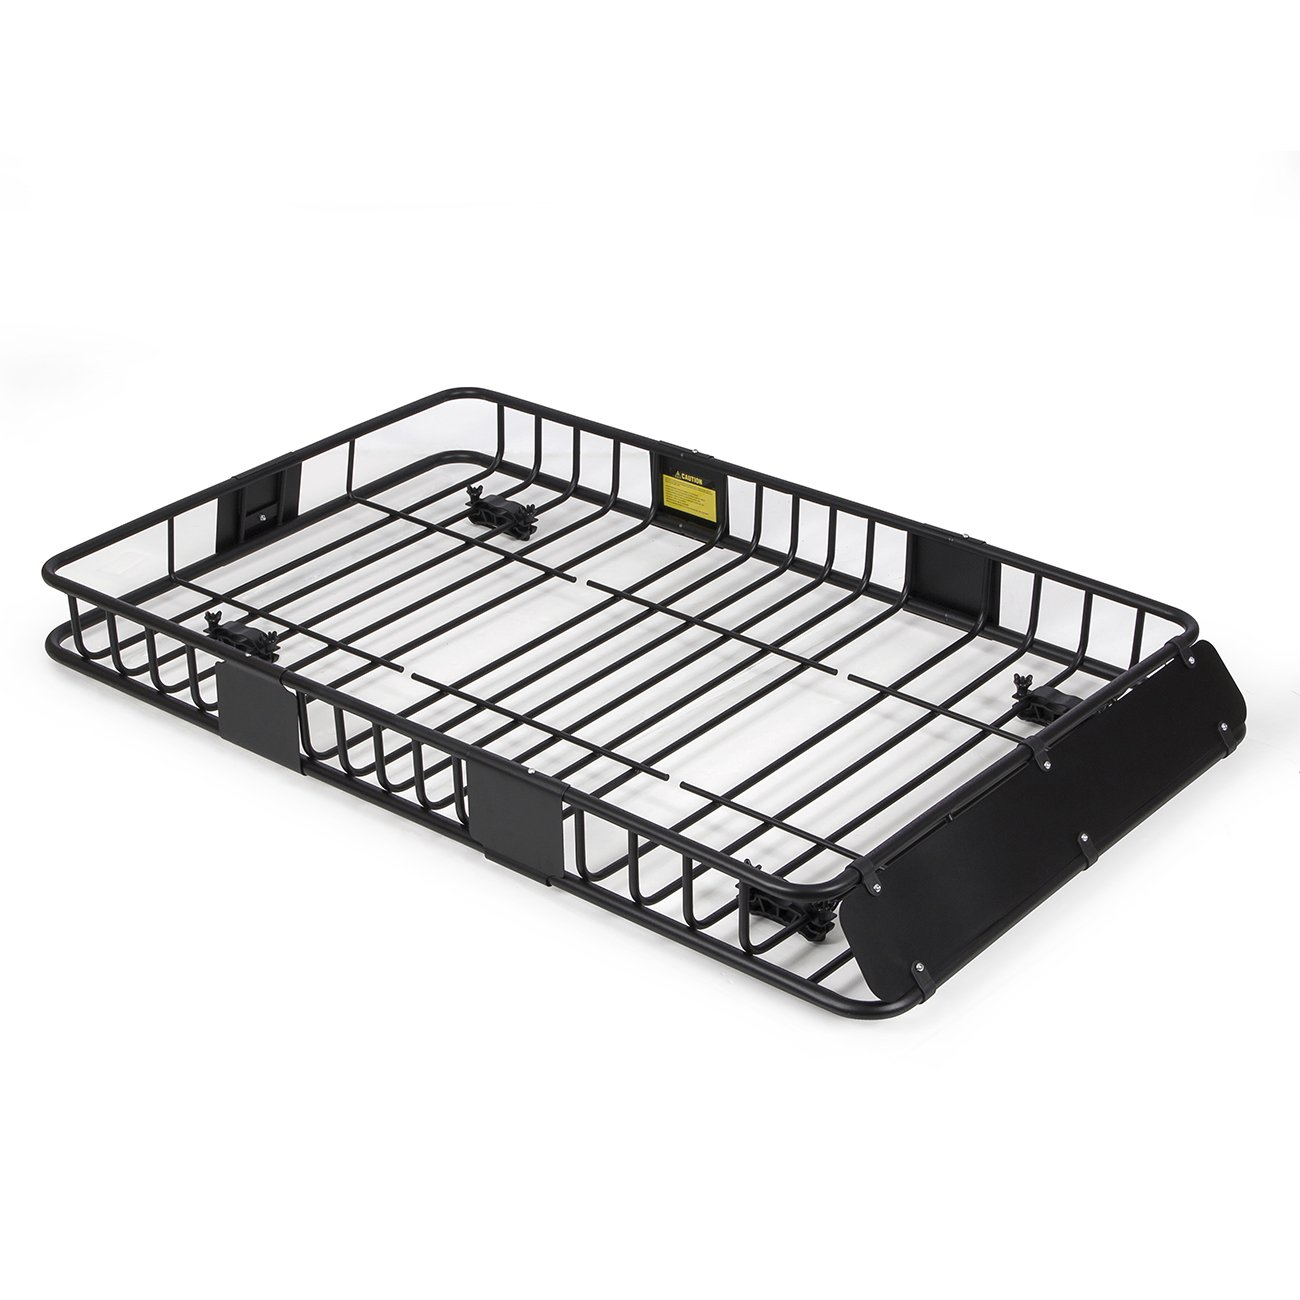 ARKSEN 64-Inch Black Roof Rack Cargo Carrier Basket}